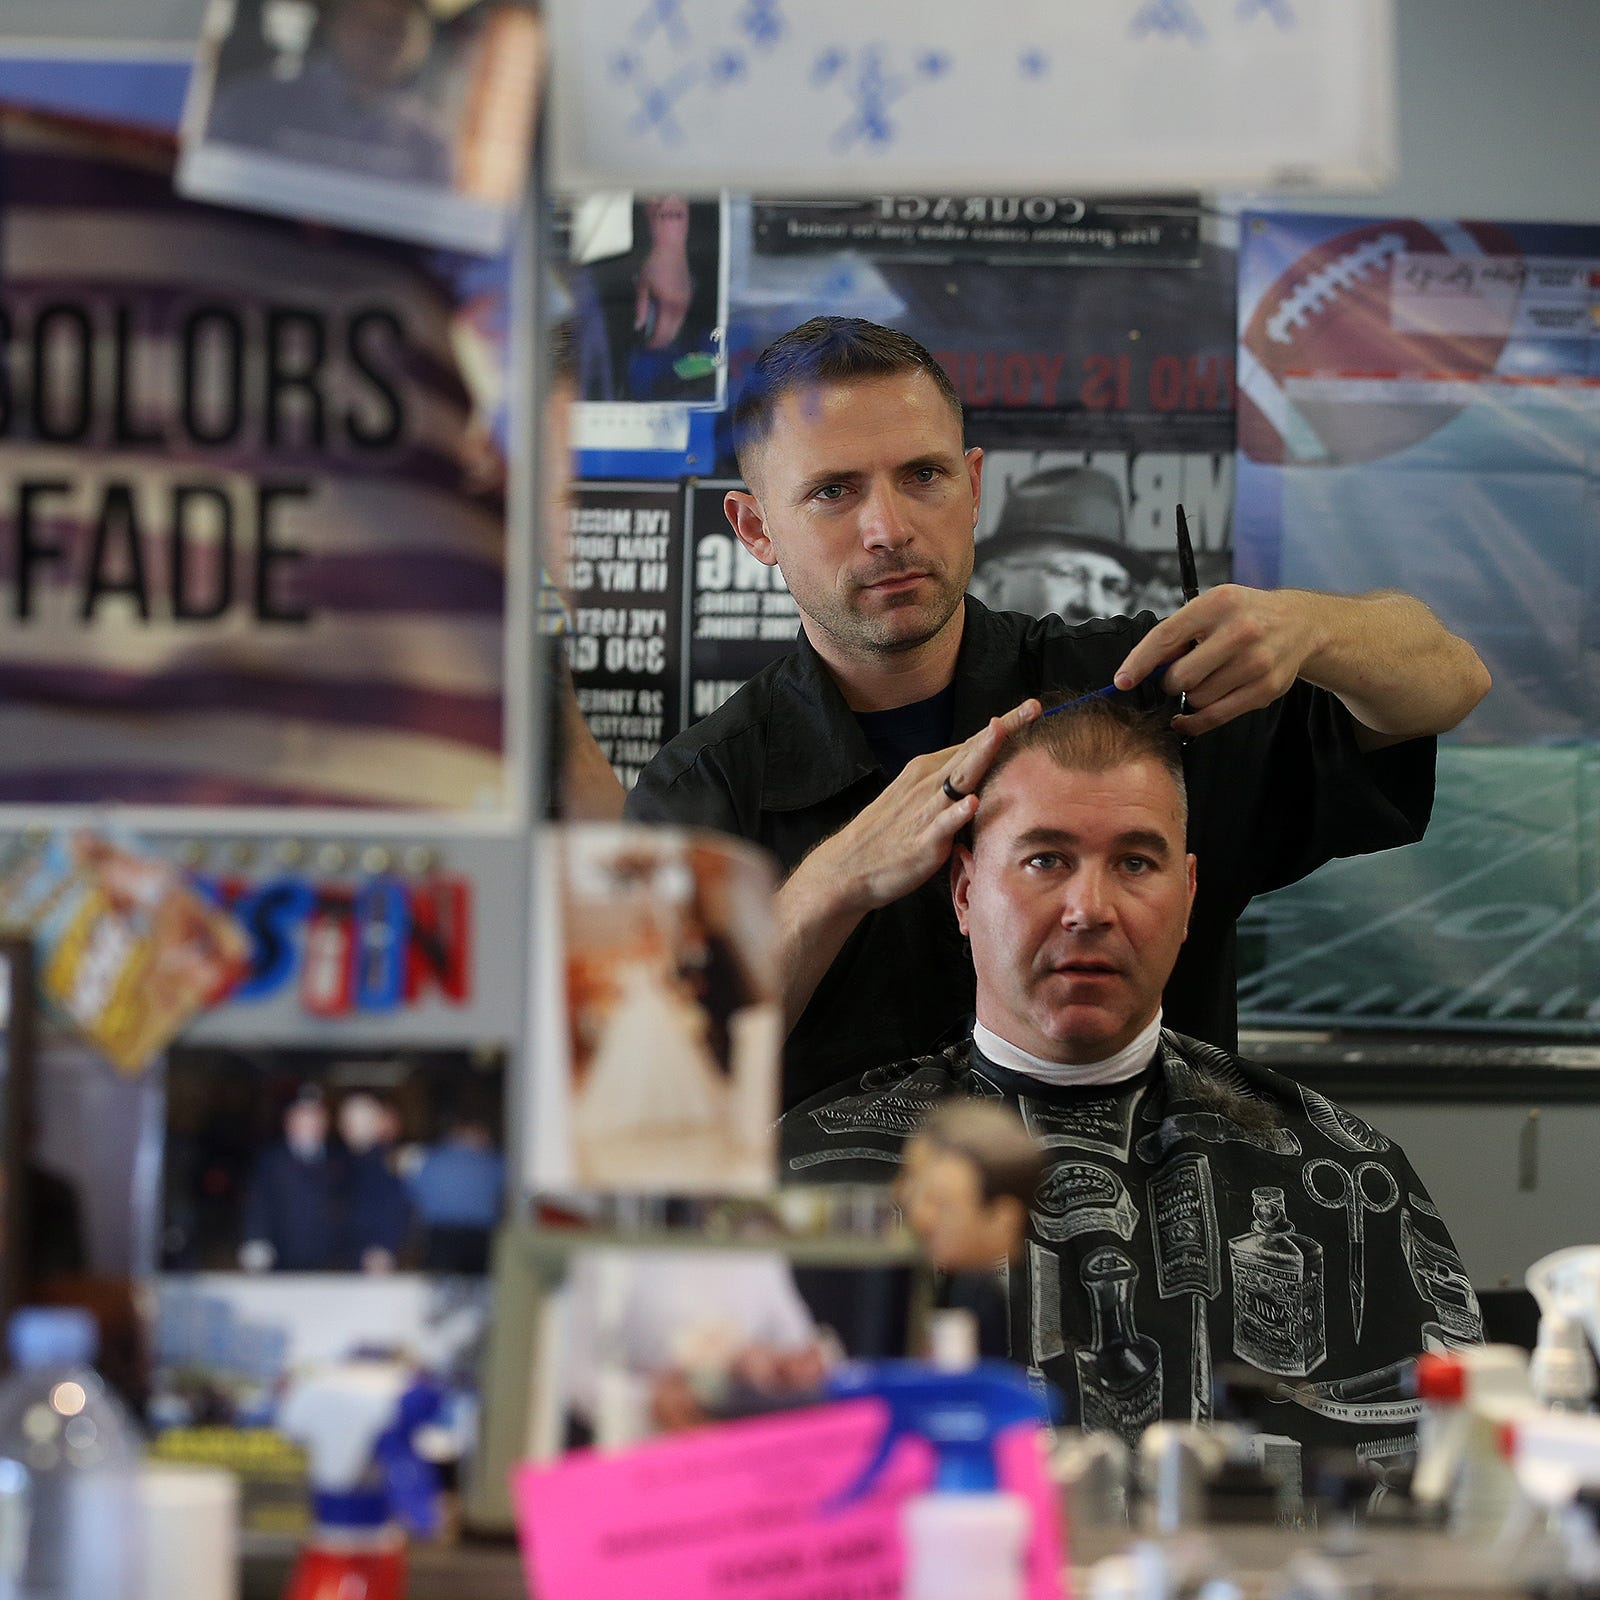 It took some swagger to start Middletown's Swagger Barbershop